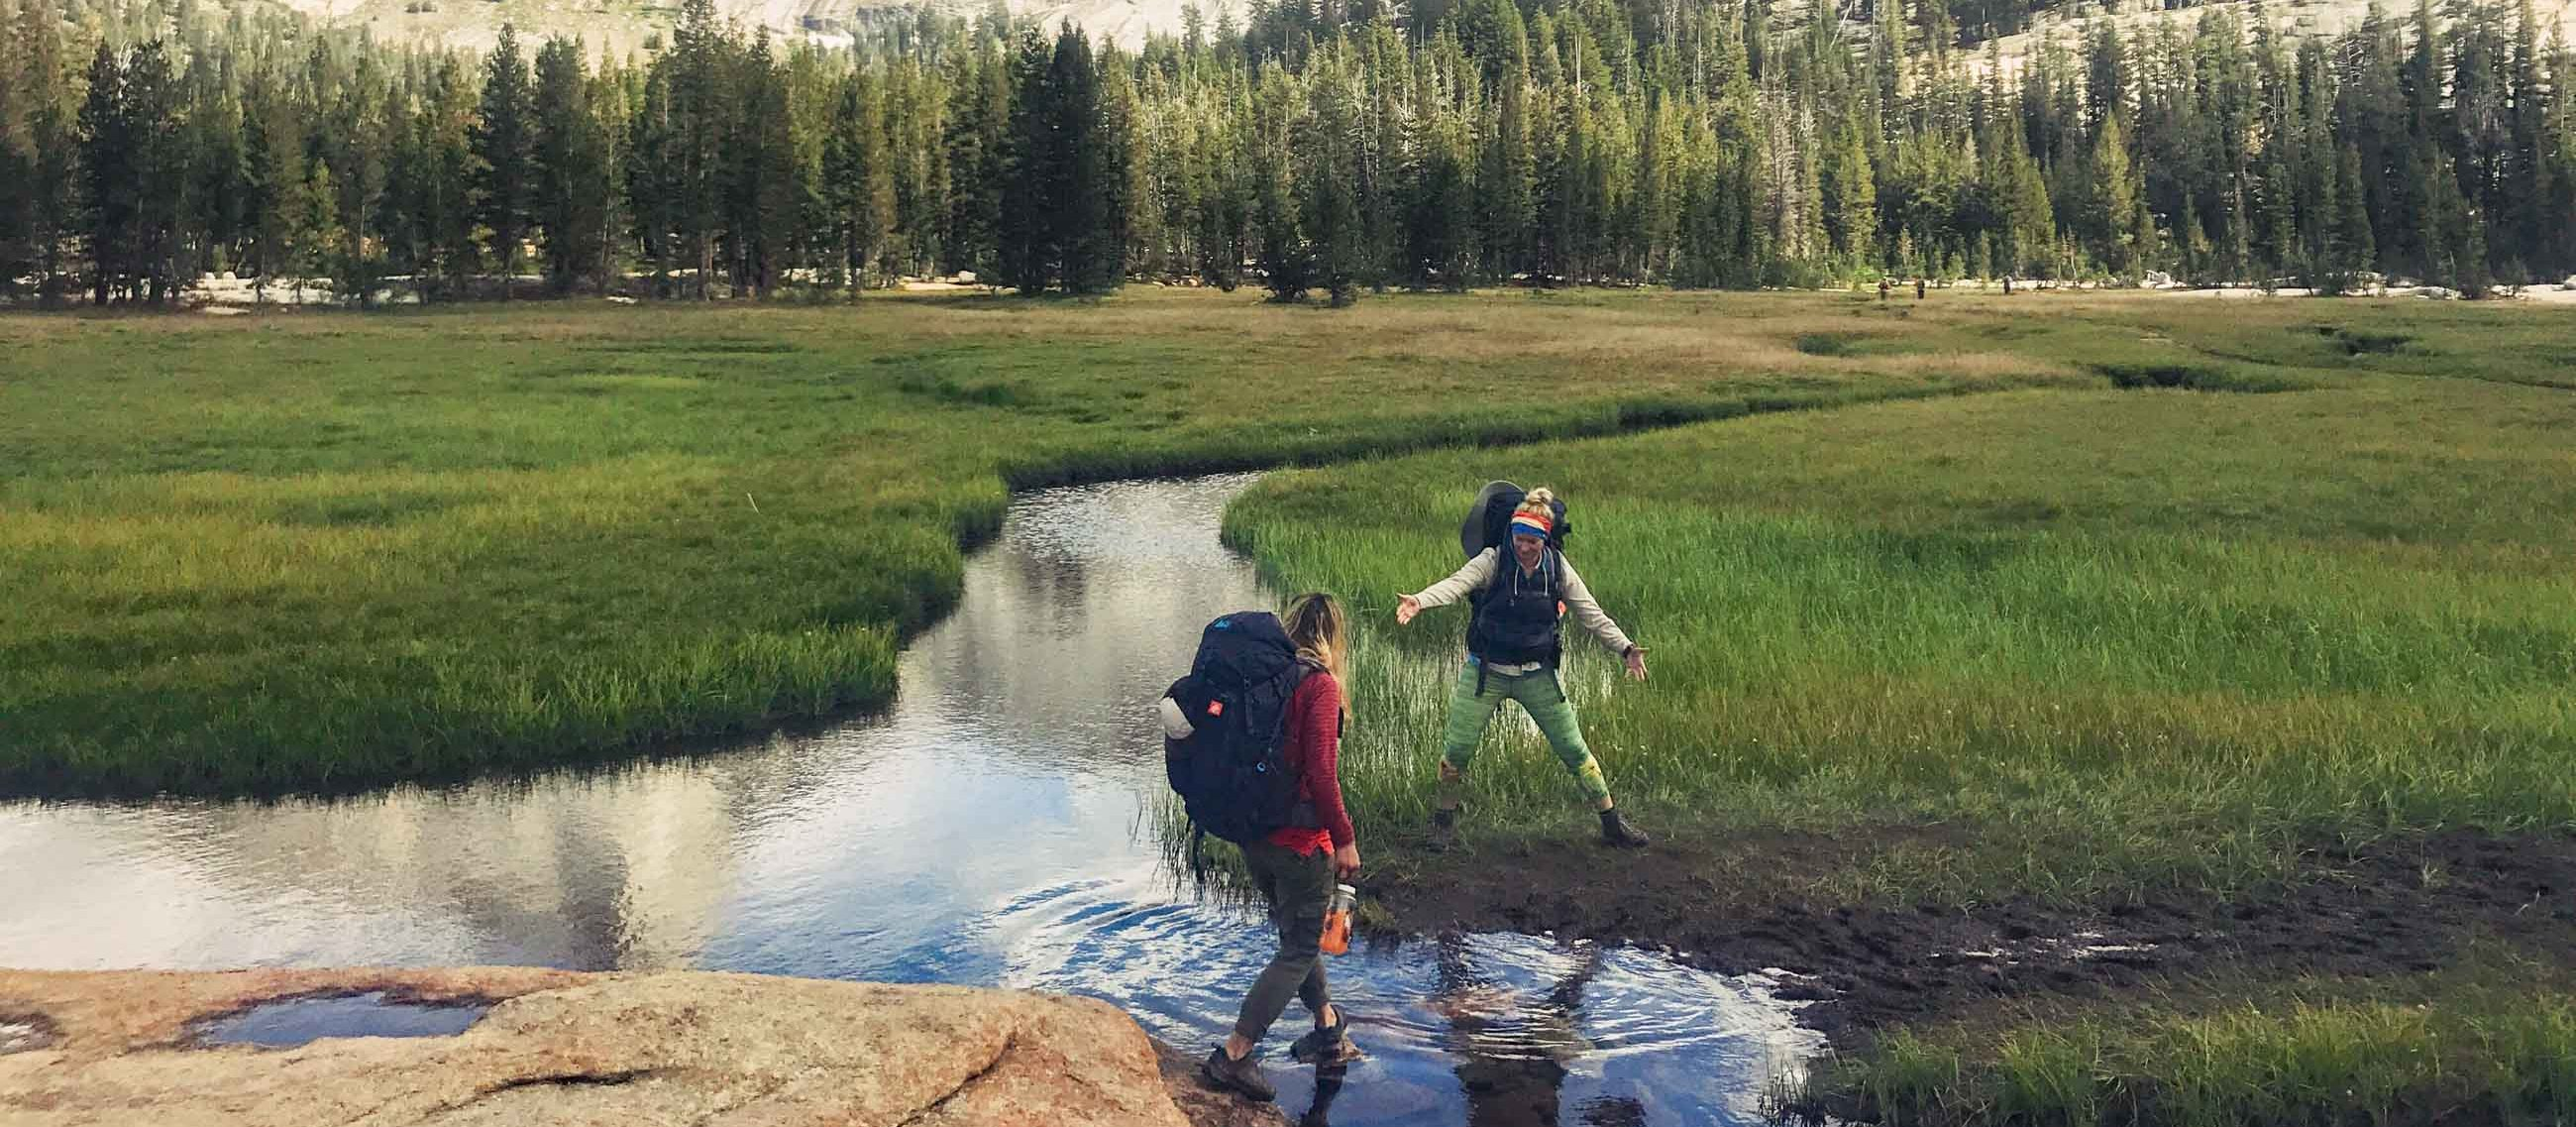 Hikers help each other across field stream at Yosemite.